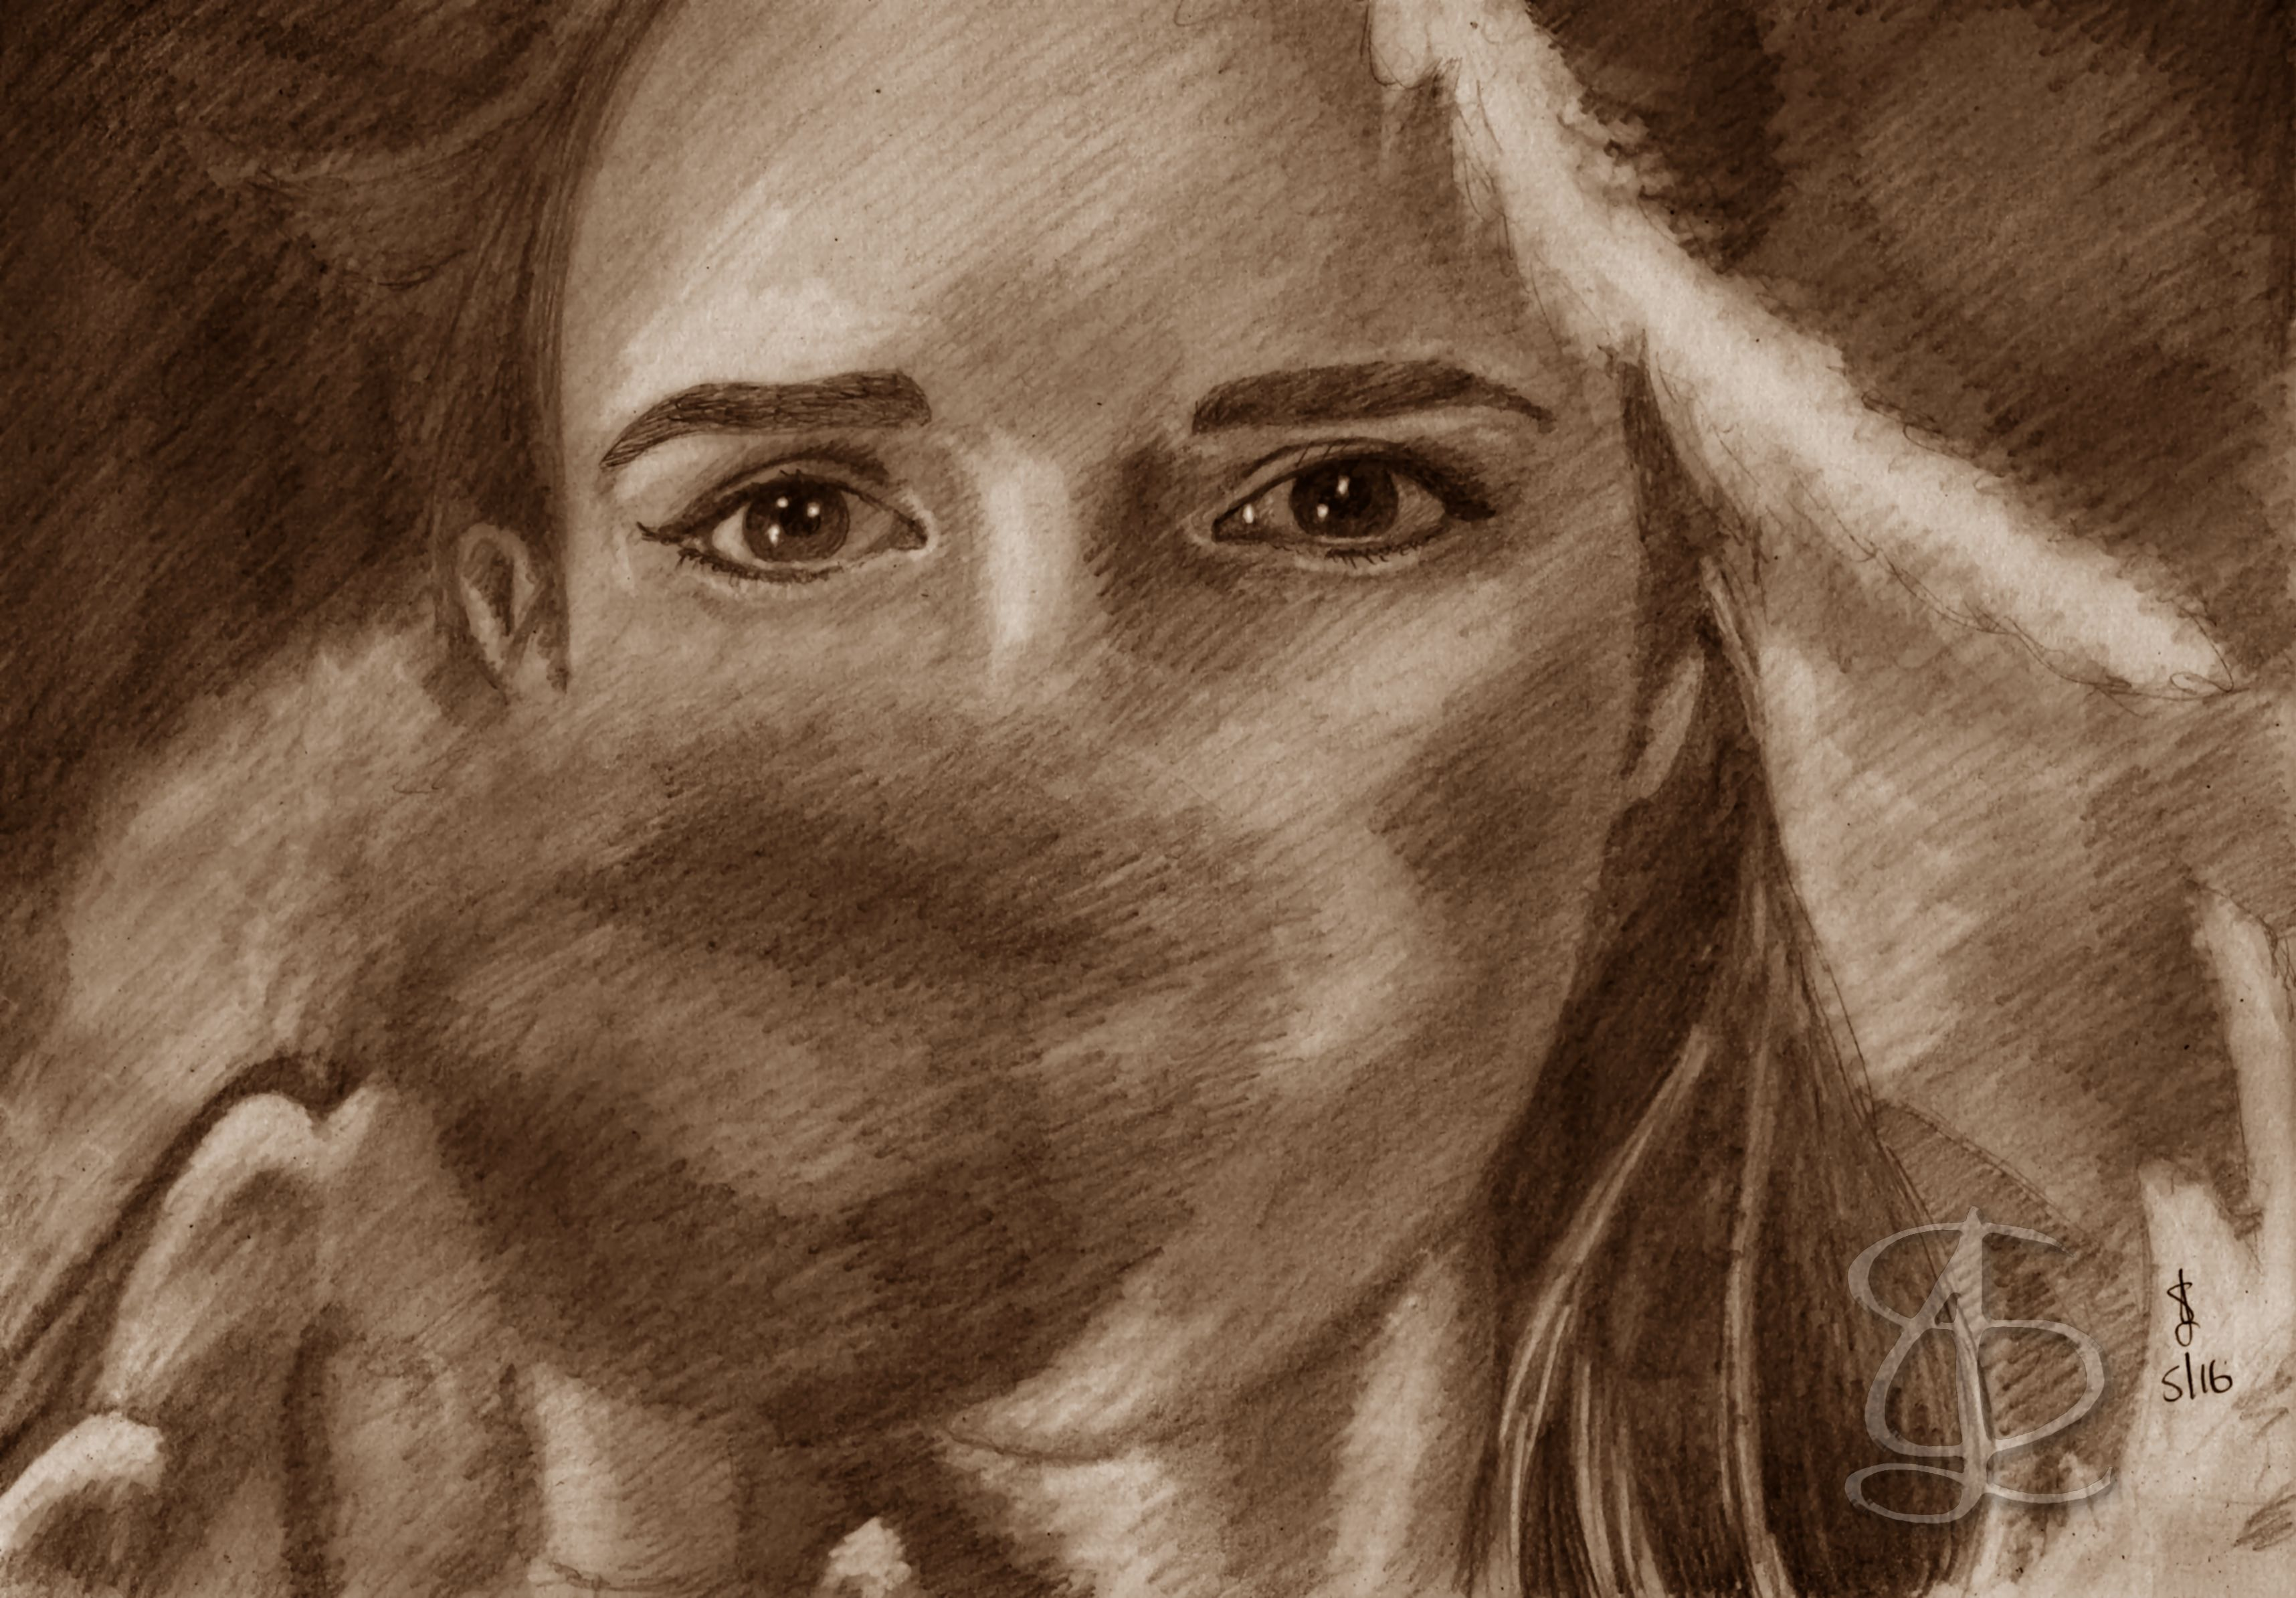 Emma Watson as Belle in ';Beauty and the Beast' (2017). Freehand sketch using HB pencil and eraser. Darkened and tinted digitally.